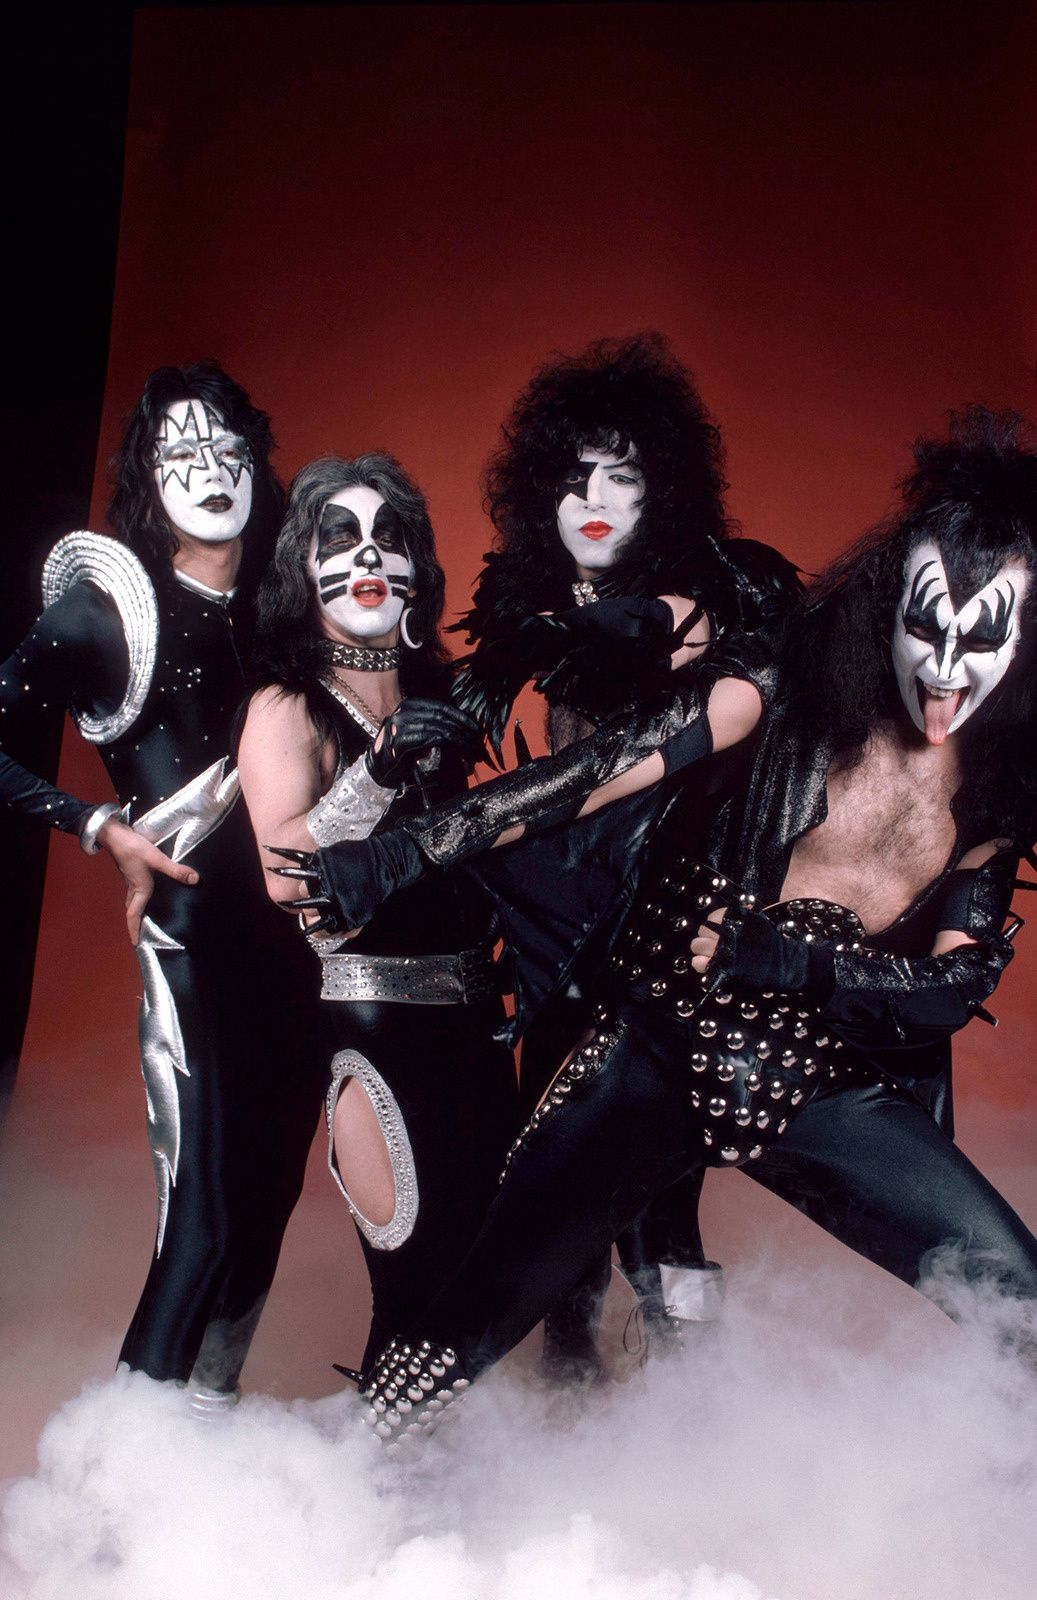 Paul Stanley - May 15th, 1975 - Kiss - Alive! Photo Session